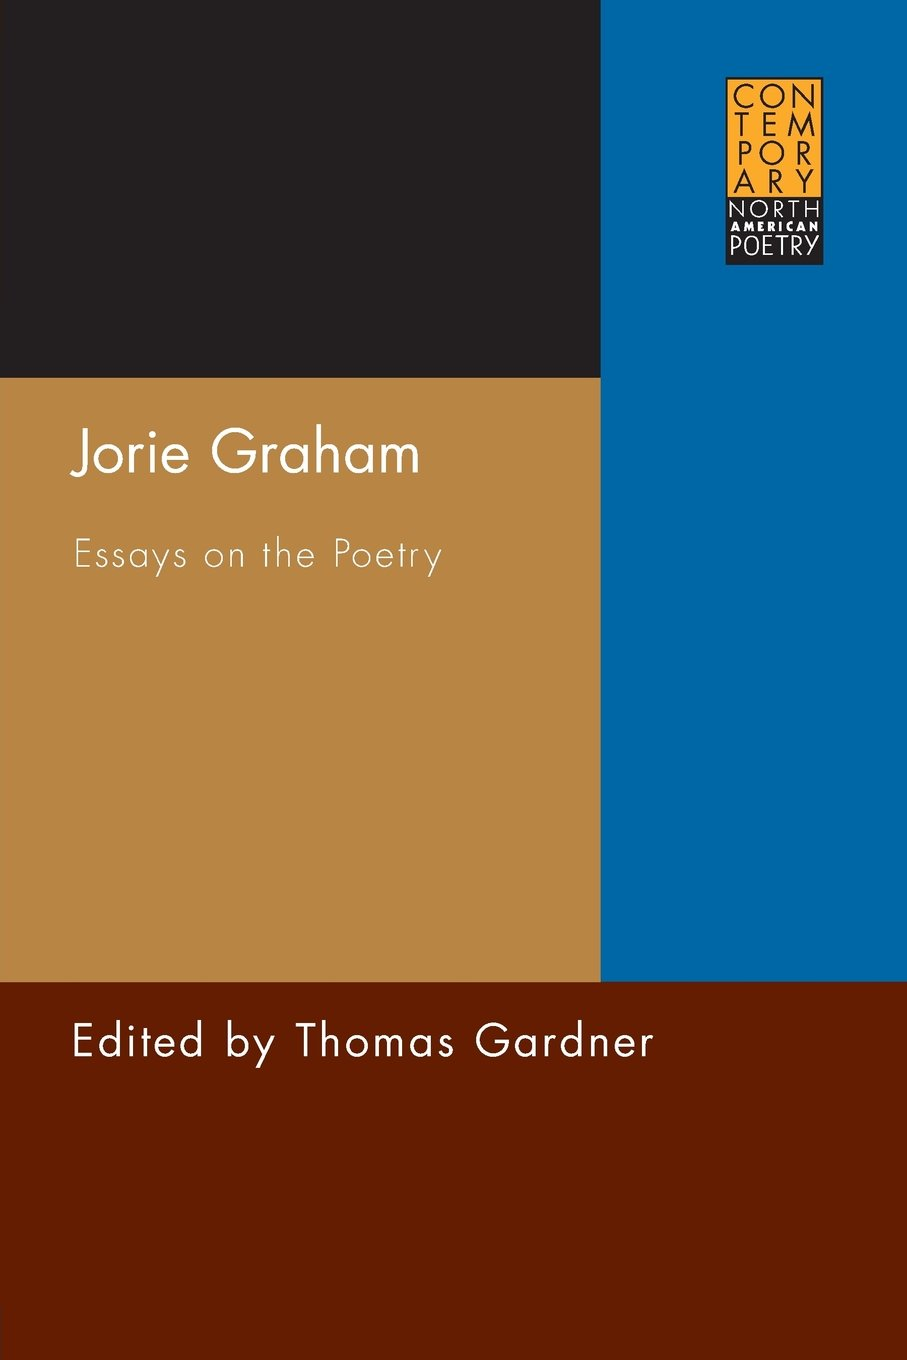 Download Jorie Graham: Essays on the Poetry (Contemporary North American Poetry) PDF